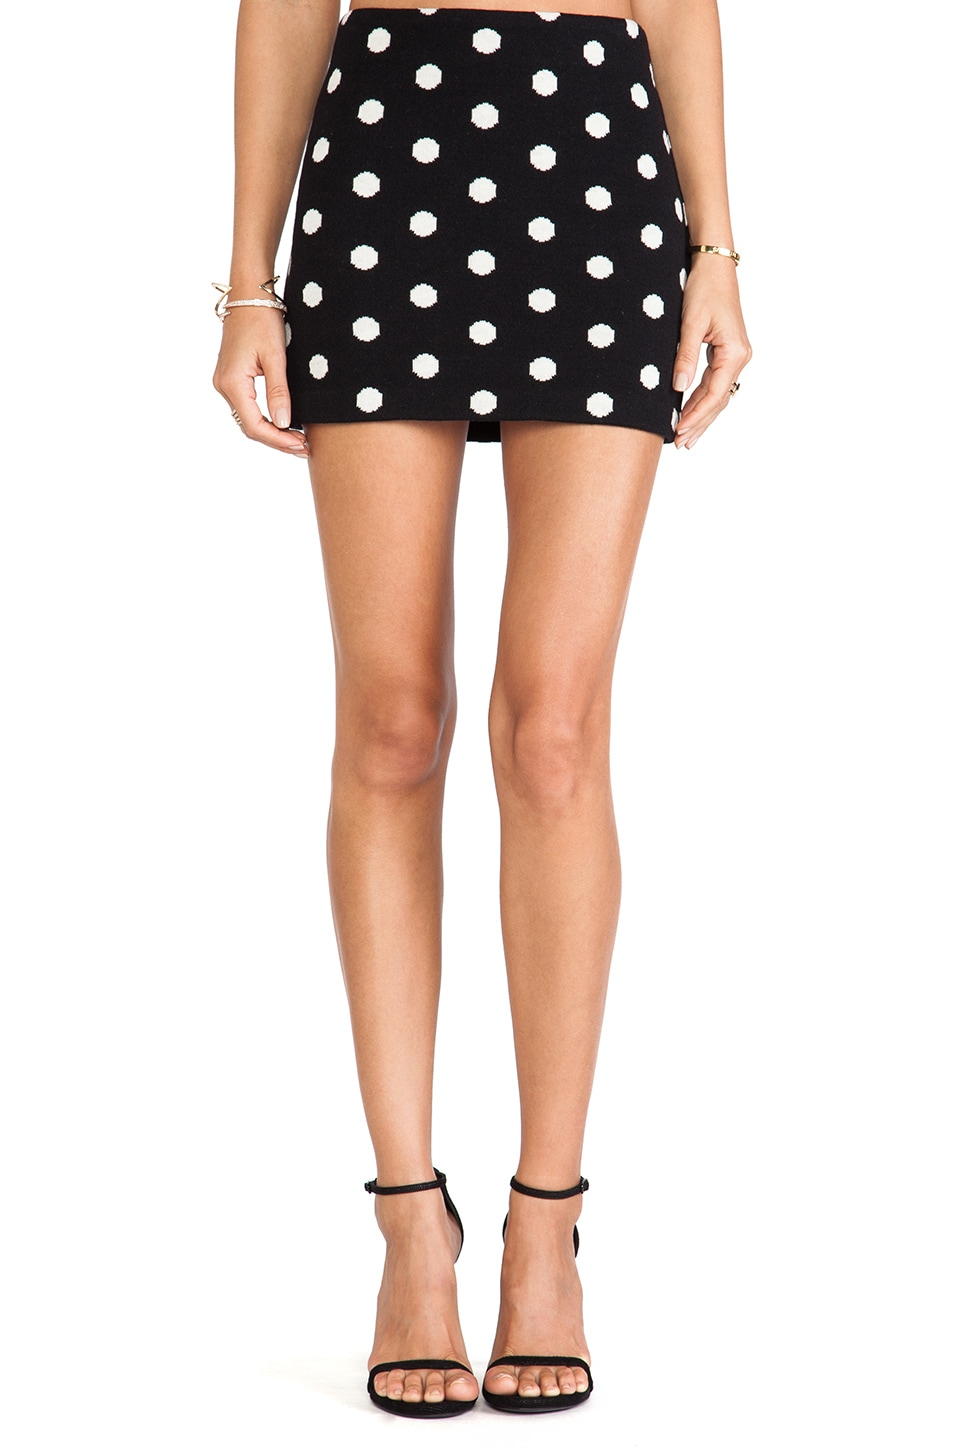 Alice + Olivia Elana Mini Skirt in Black & White